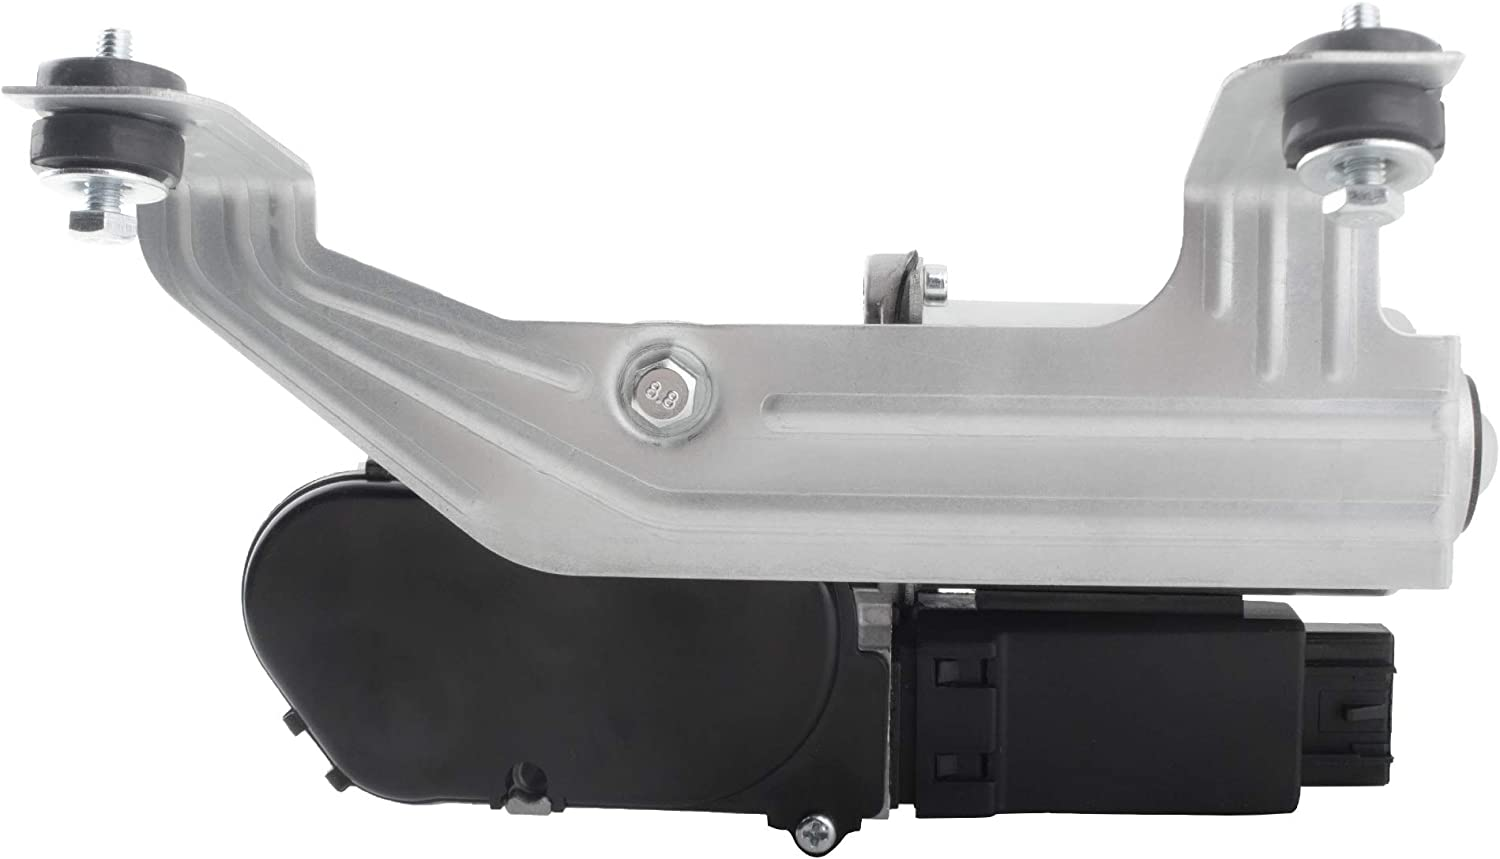 Compatible with Chevy Uplander Pontiac Montana SV6 2005-2009 Replaces # 20815337 40-1058 BOXI 15192152 Replacement Rear Window Wiper Motor Compatible with Buick Terraza Saturn Relay 2005-2007